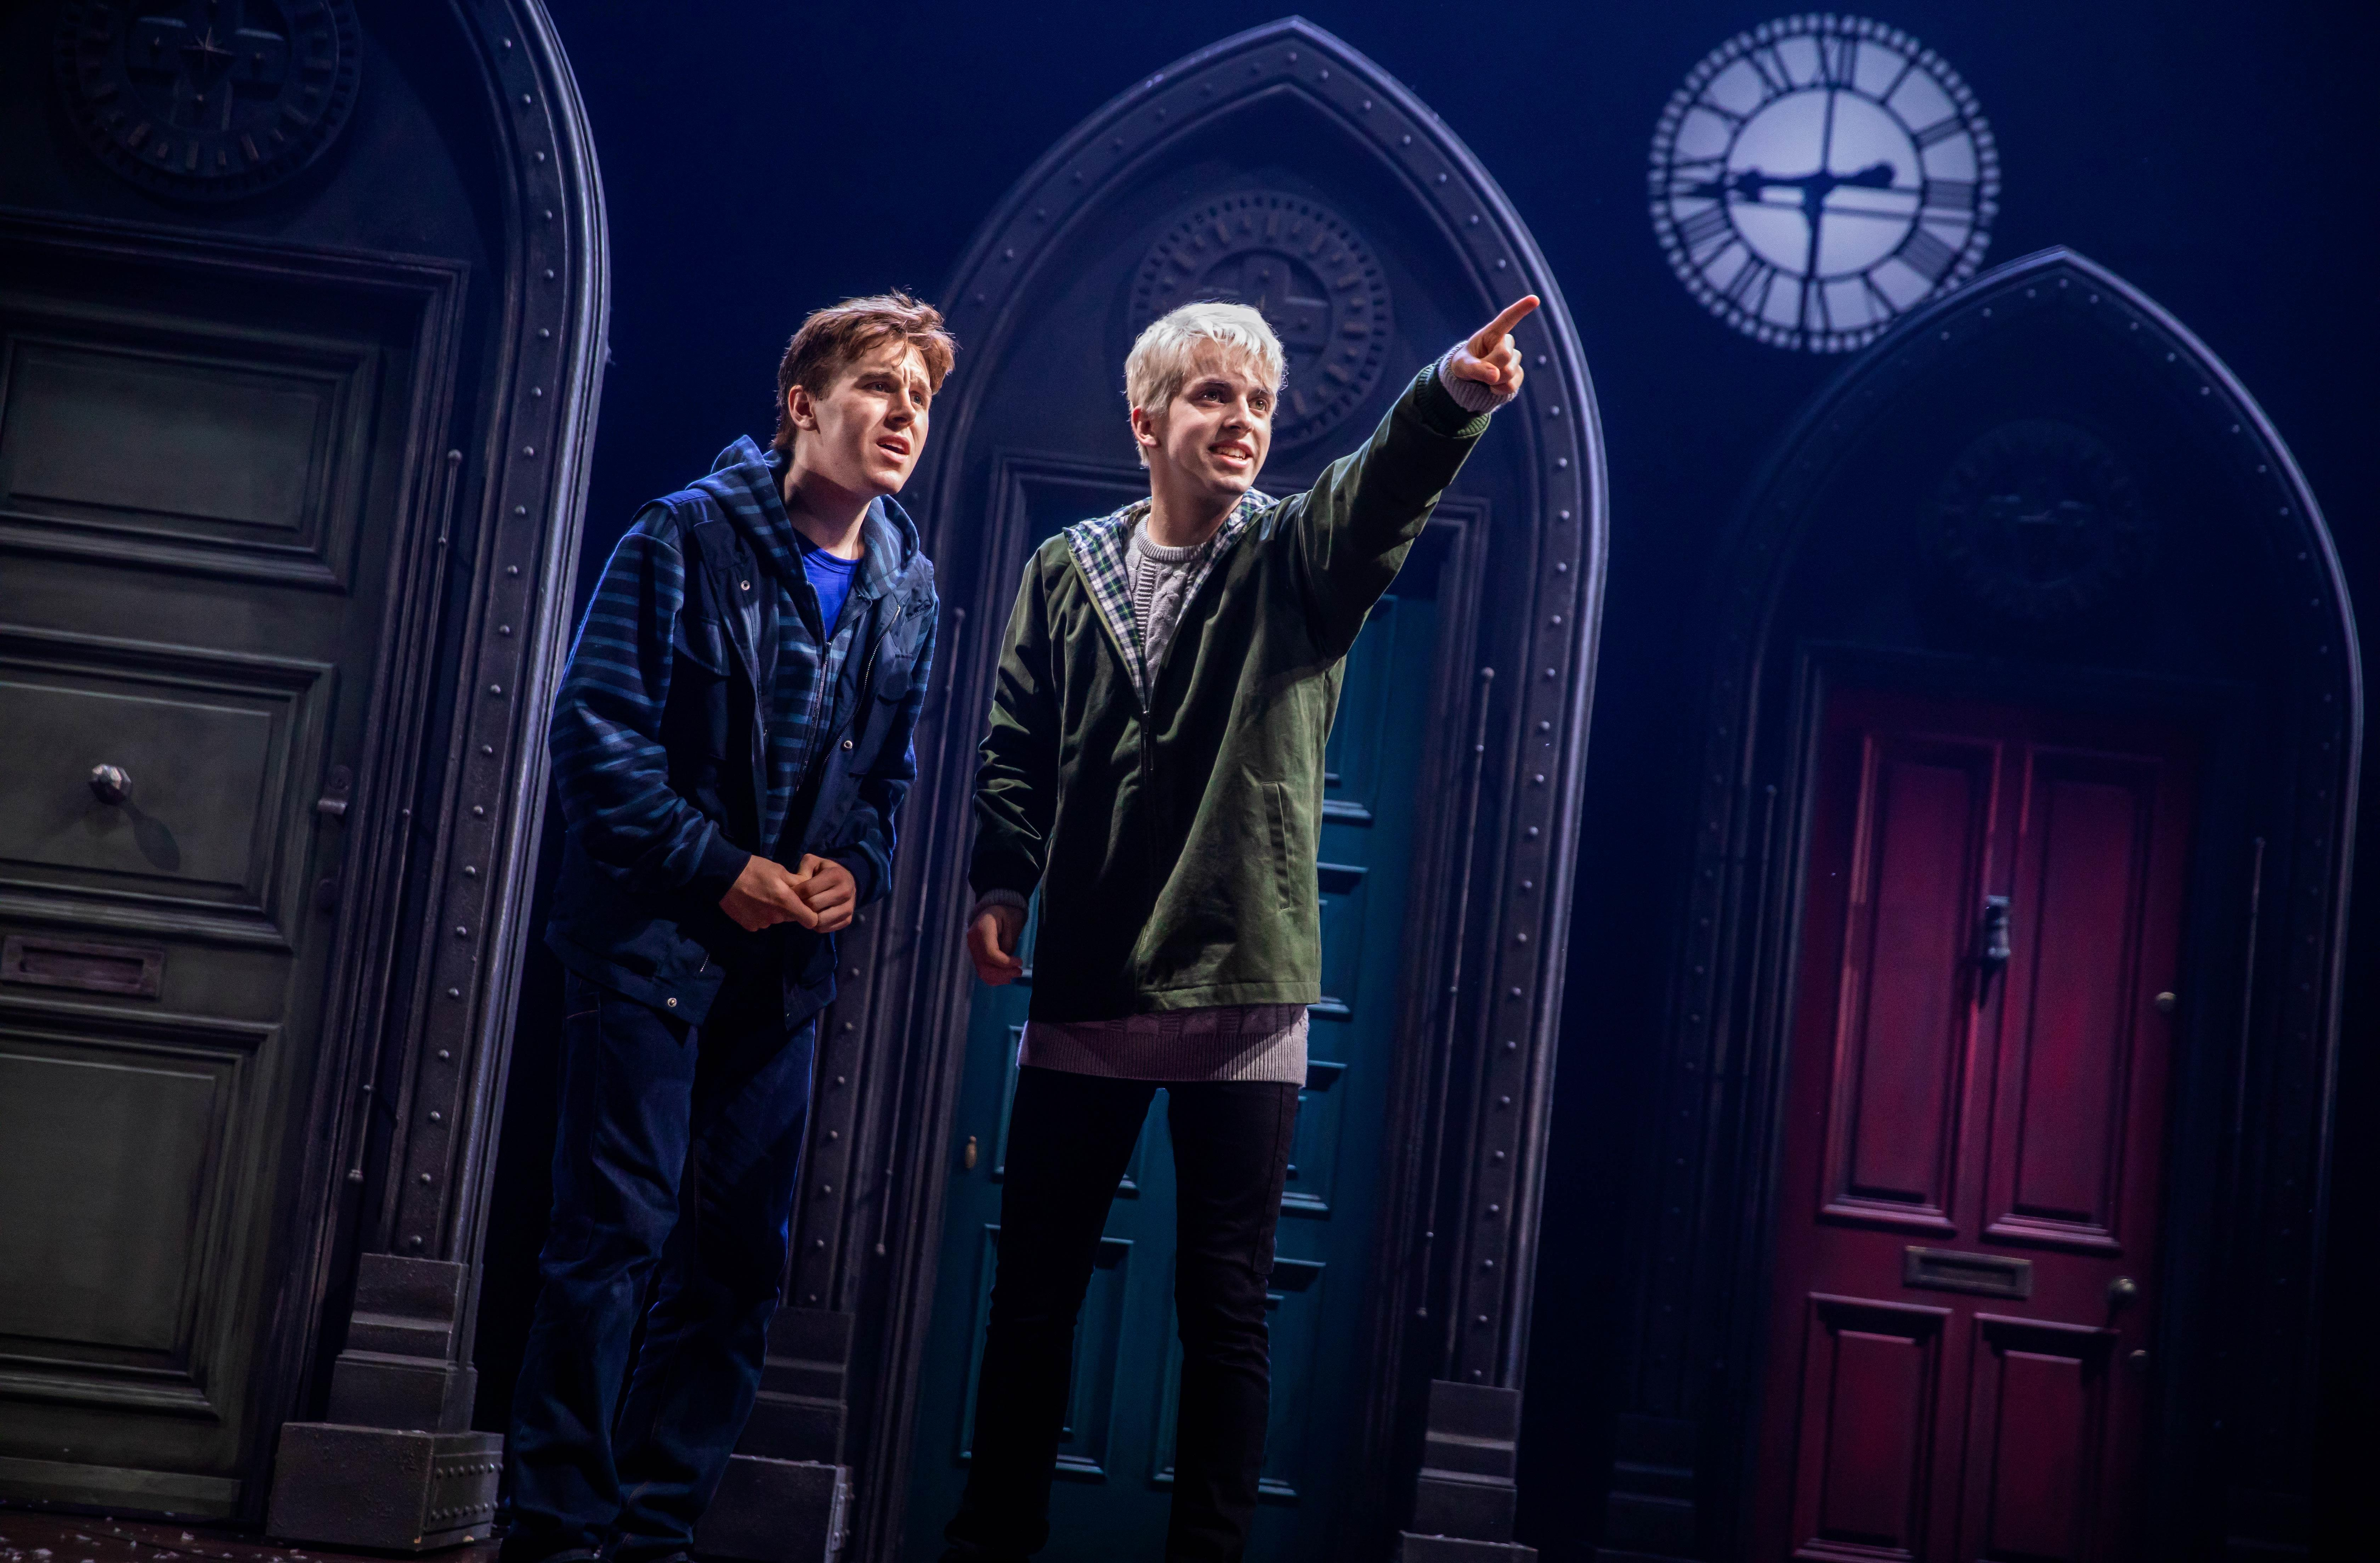 Potterish.com [Year 18] :: Harry Potter, The Ickabog, Fantastic Beasts, JK Rowling, Daniel, Emma & Rupert Albus and Scorpius try to solve problems with the Time Turner in a new picture of Cursed Child